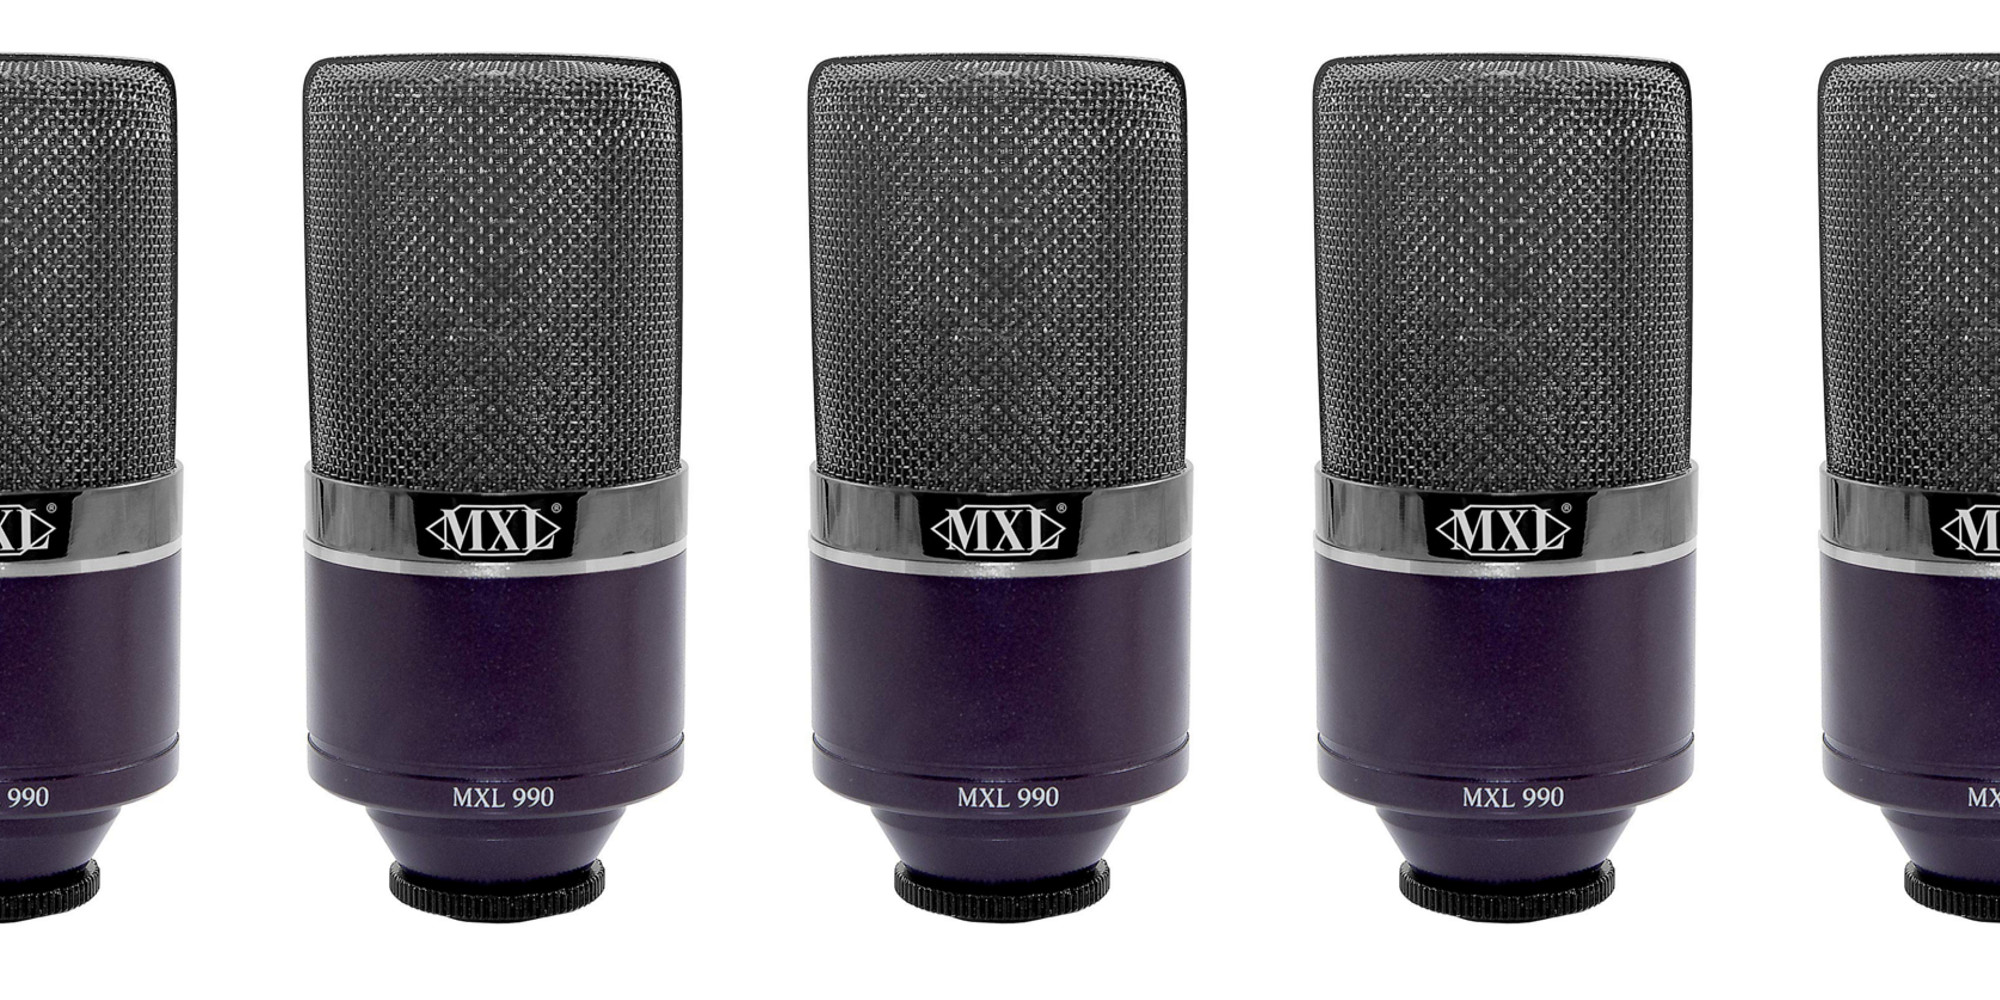 Increase your recording quality w/ MXL's Midnight Condenser Mic: $60 (Today only, Reg. $90)